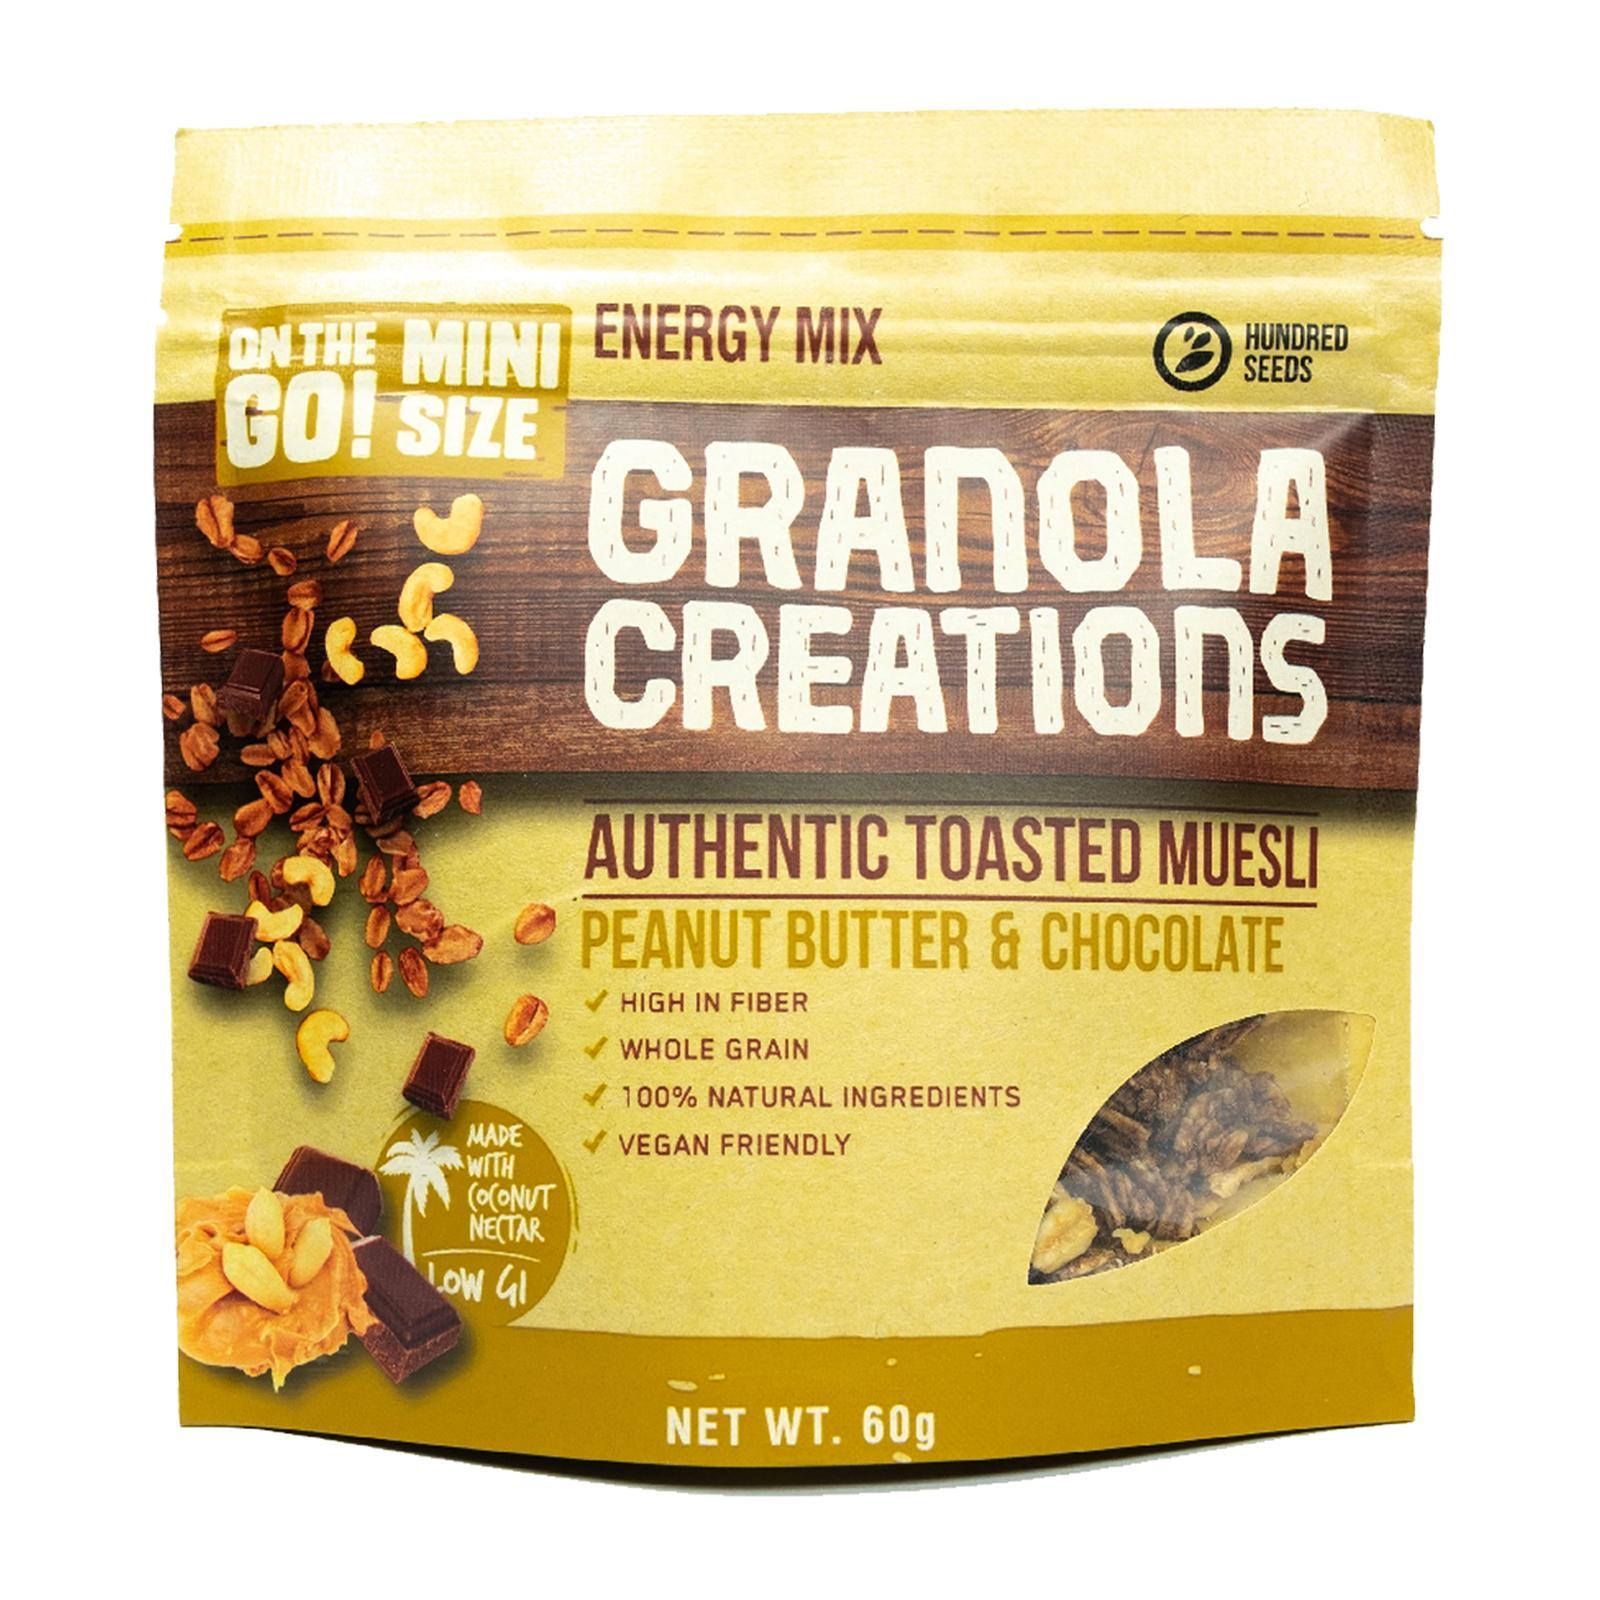 Granola Creations Authentic Toasted Muesli - Peanut Butter And Chocolate - By Sonnamera